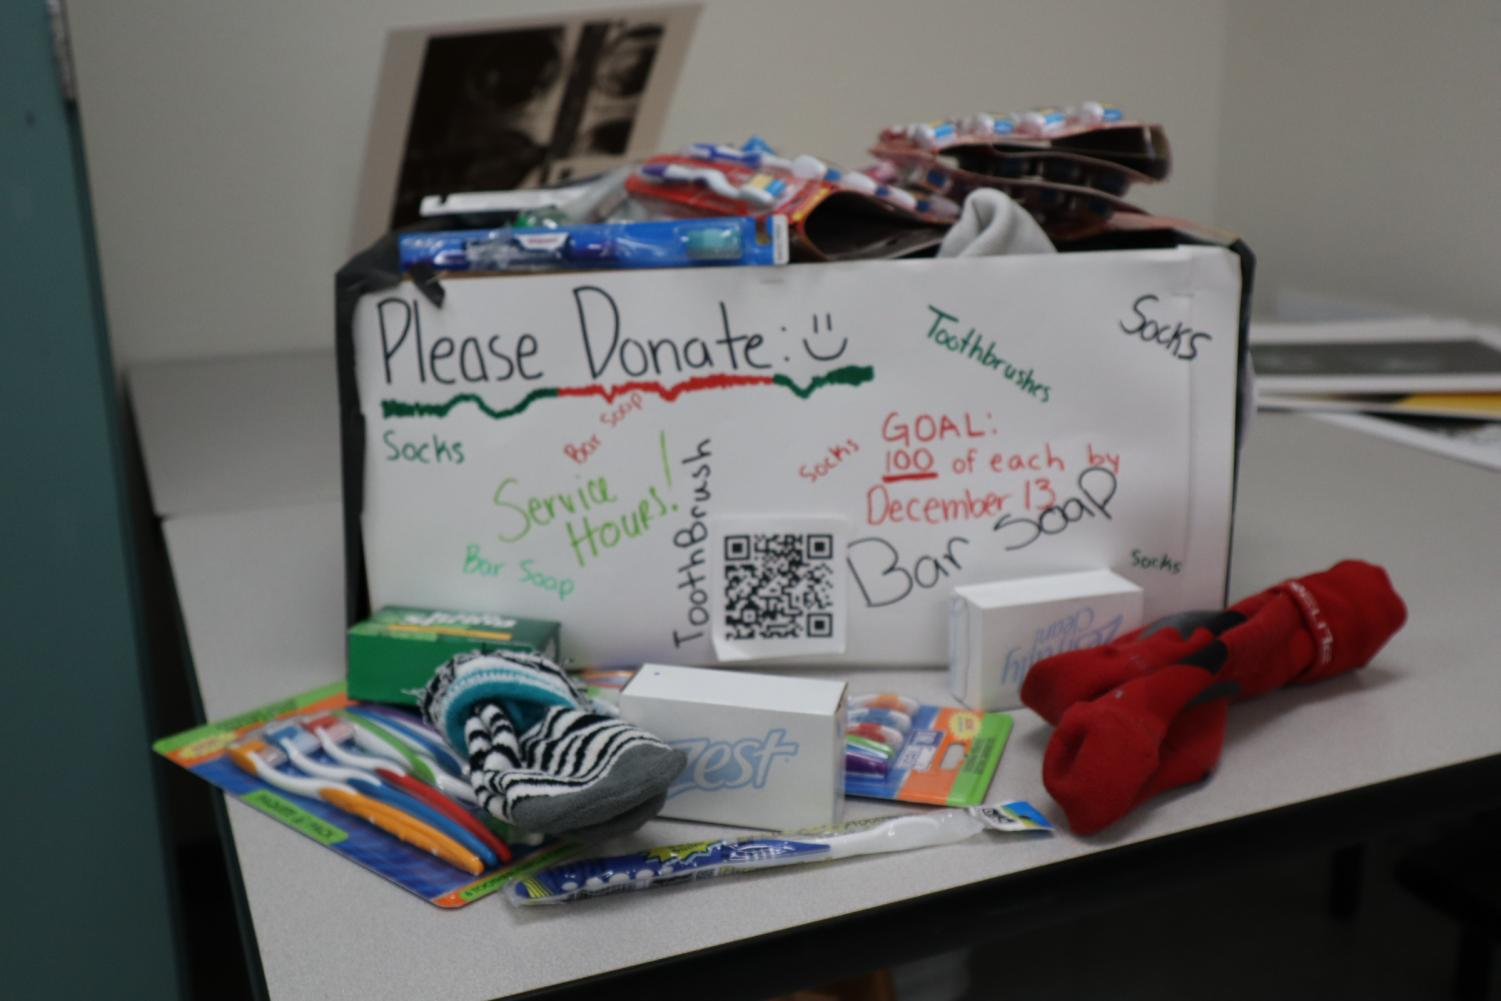 The box used to collect items for the drive. this was desigmned by every member of the club according to Shipps and there were several prototypes as well.